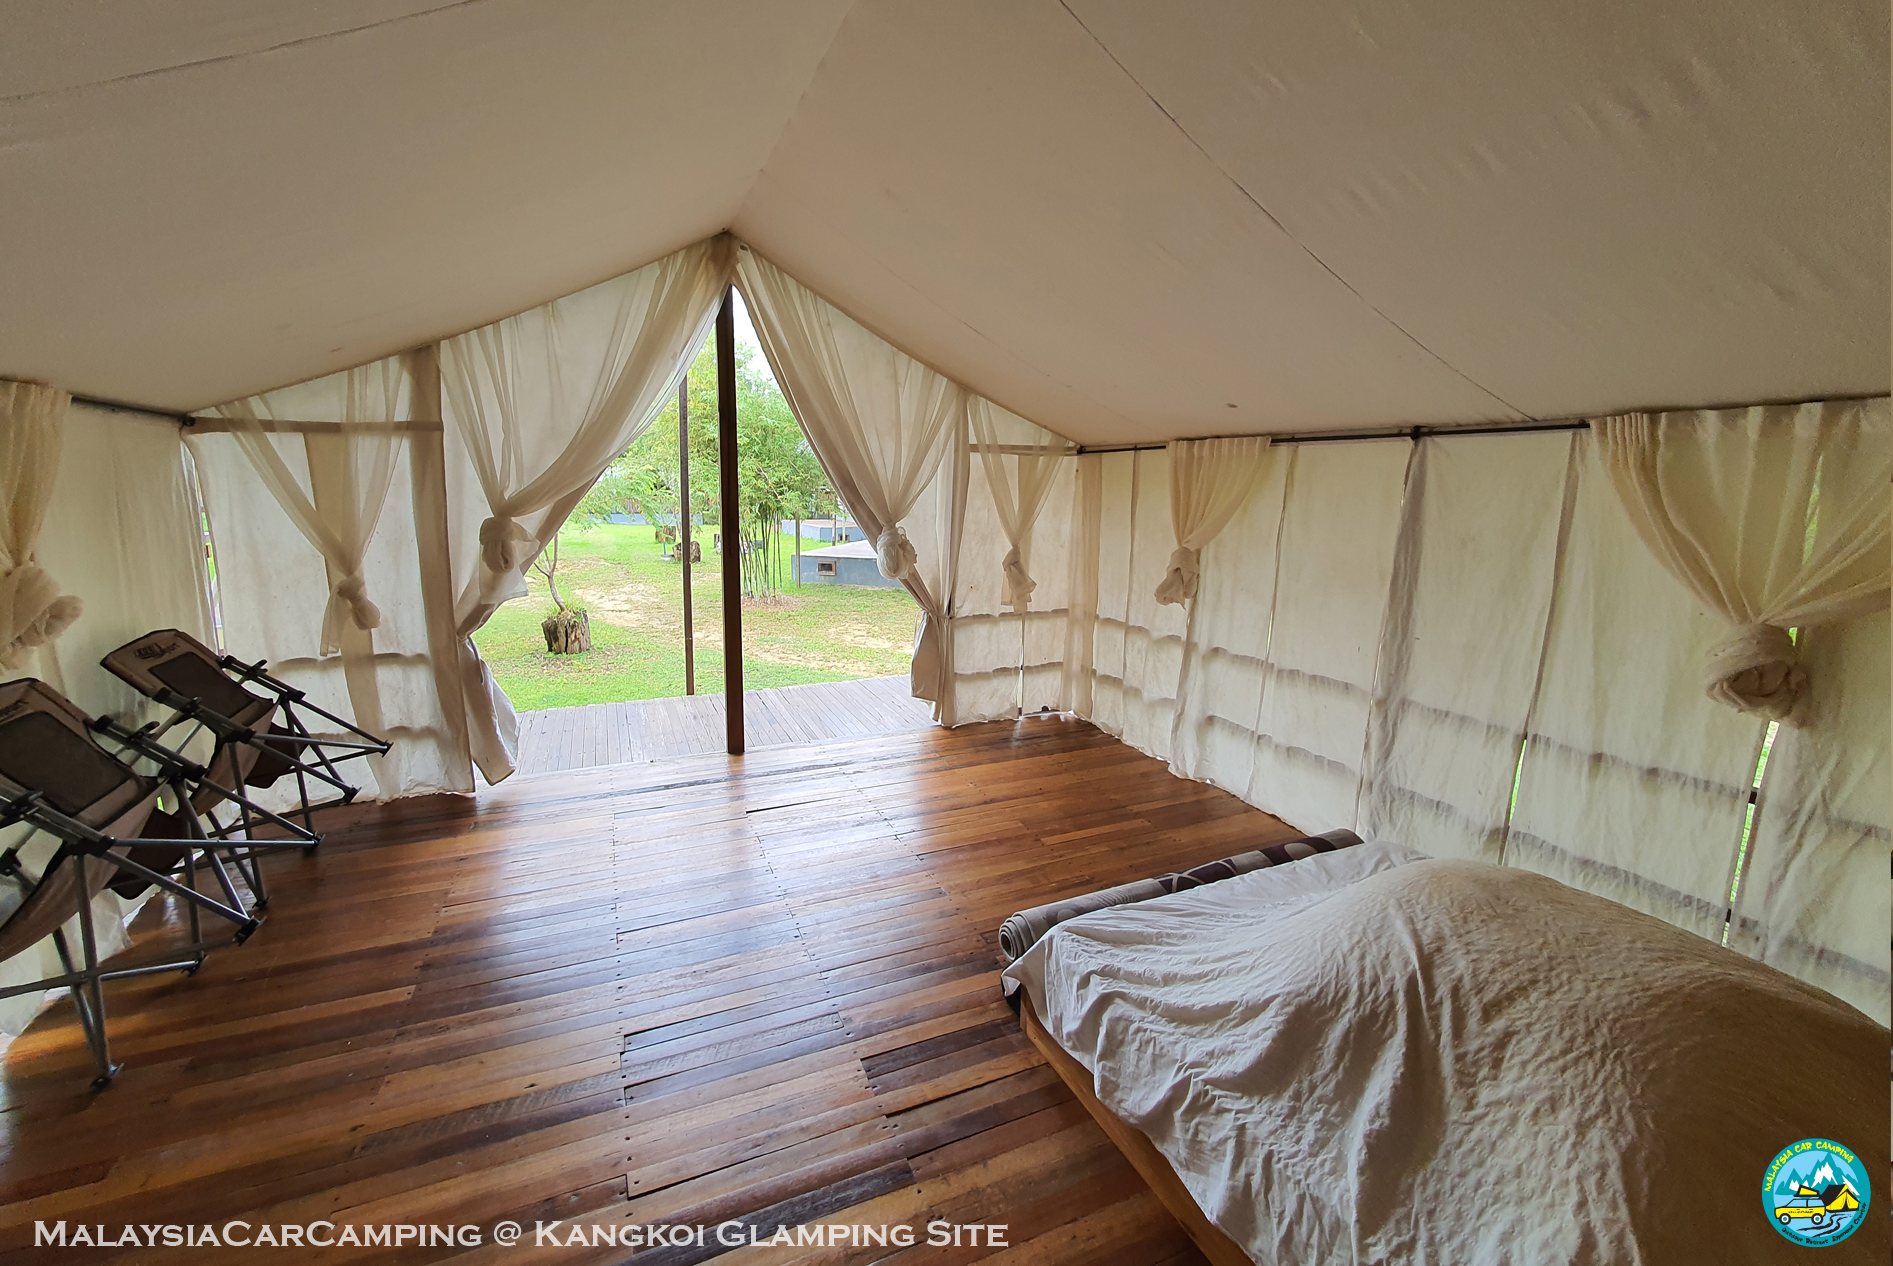 view from the inside tent